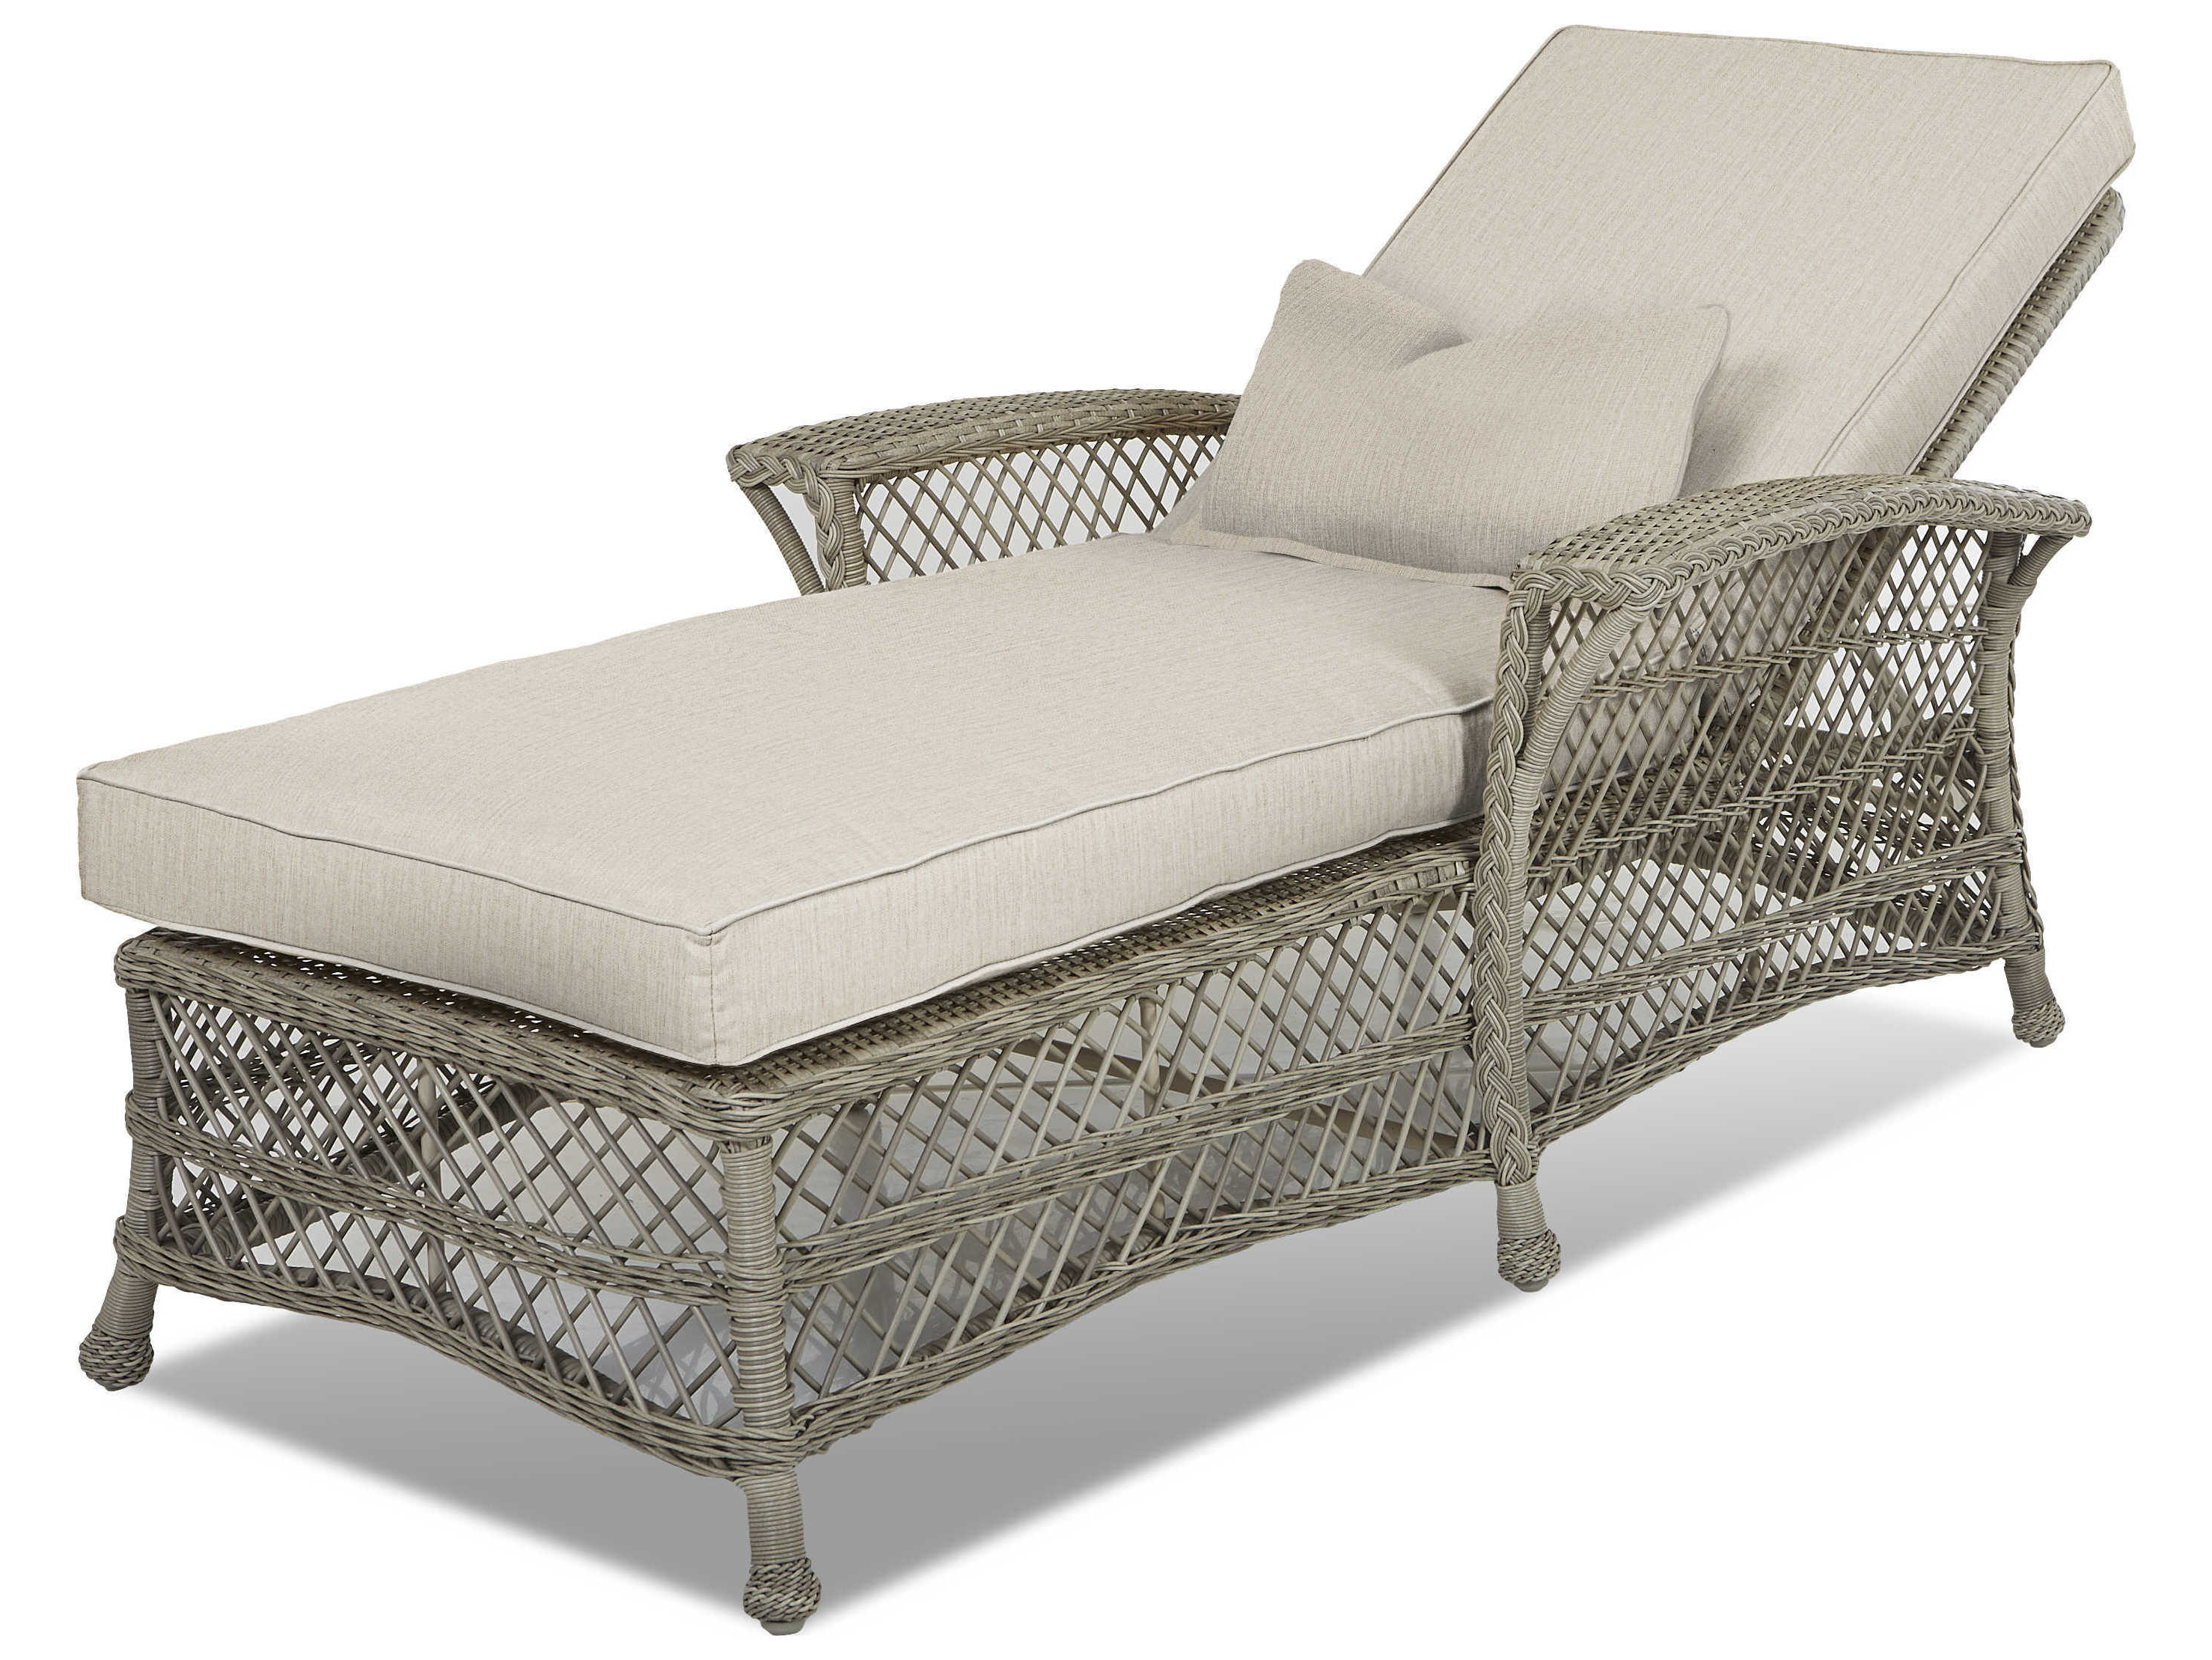 Outdoor Adjustable Rattan Wicker Chaise Pool Chairs With Cushions Regarding Most Current Klaussner Willow Wicker Cushion Chaise Lounge (View 21 of 25)